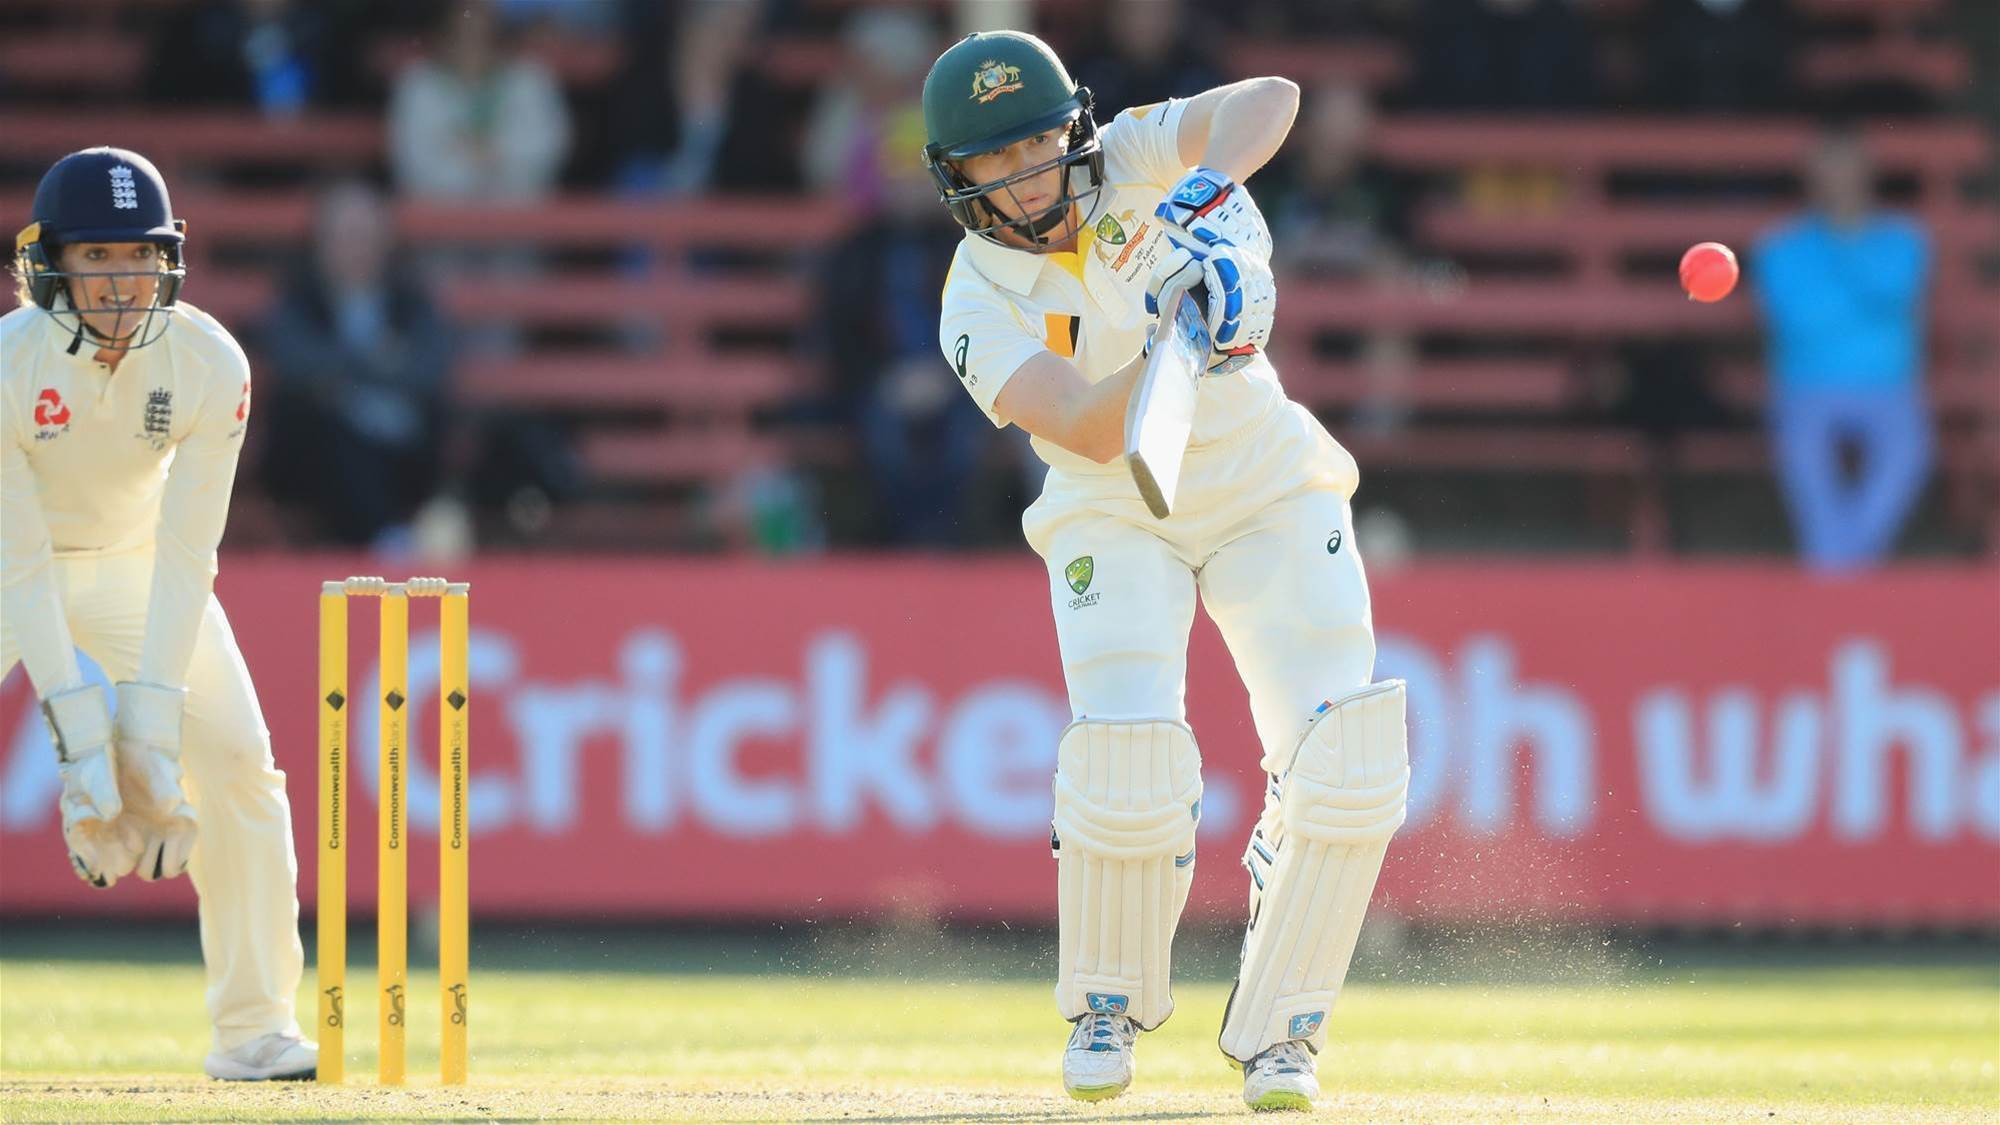 Blackwell retires from international and state cricket